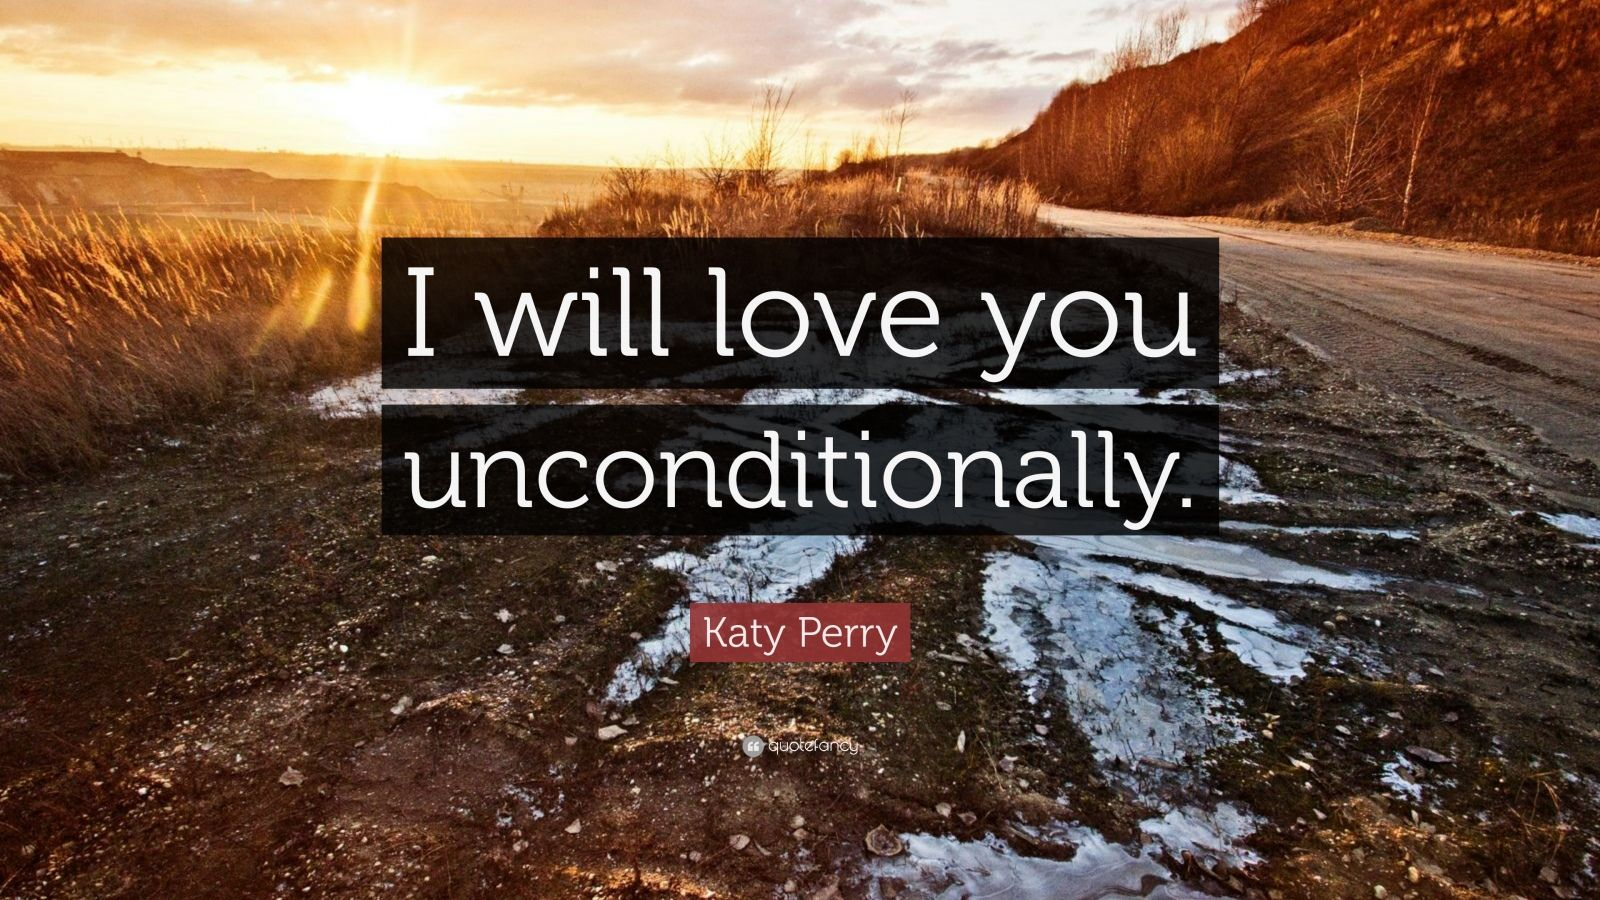 I Love You Unconditionally Quotes : Katy Perry Quote: ?I will love you unconditionally.? (16 ...